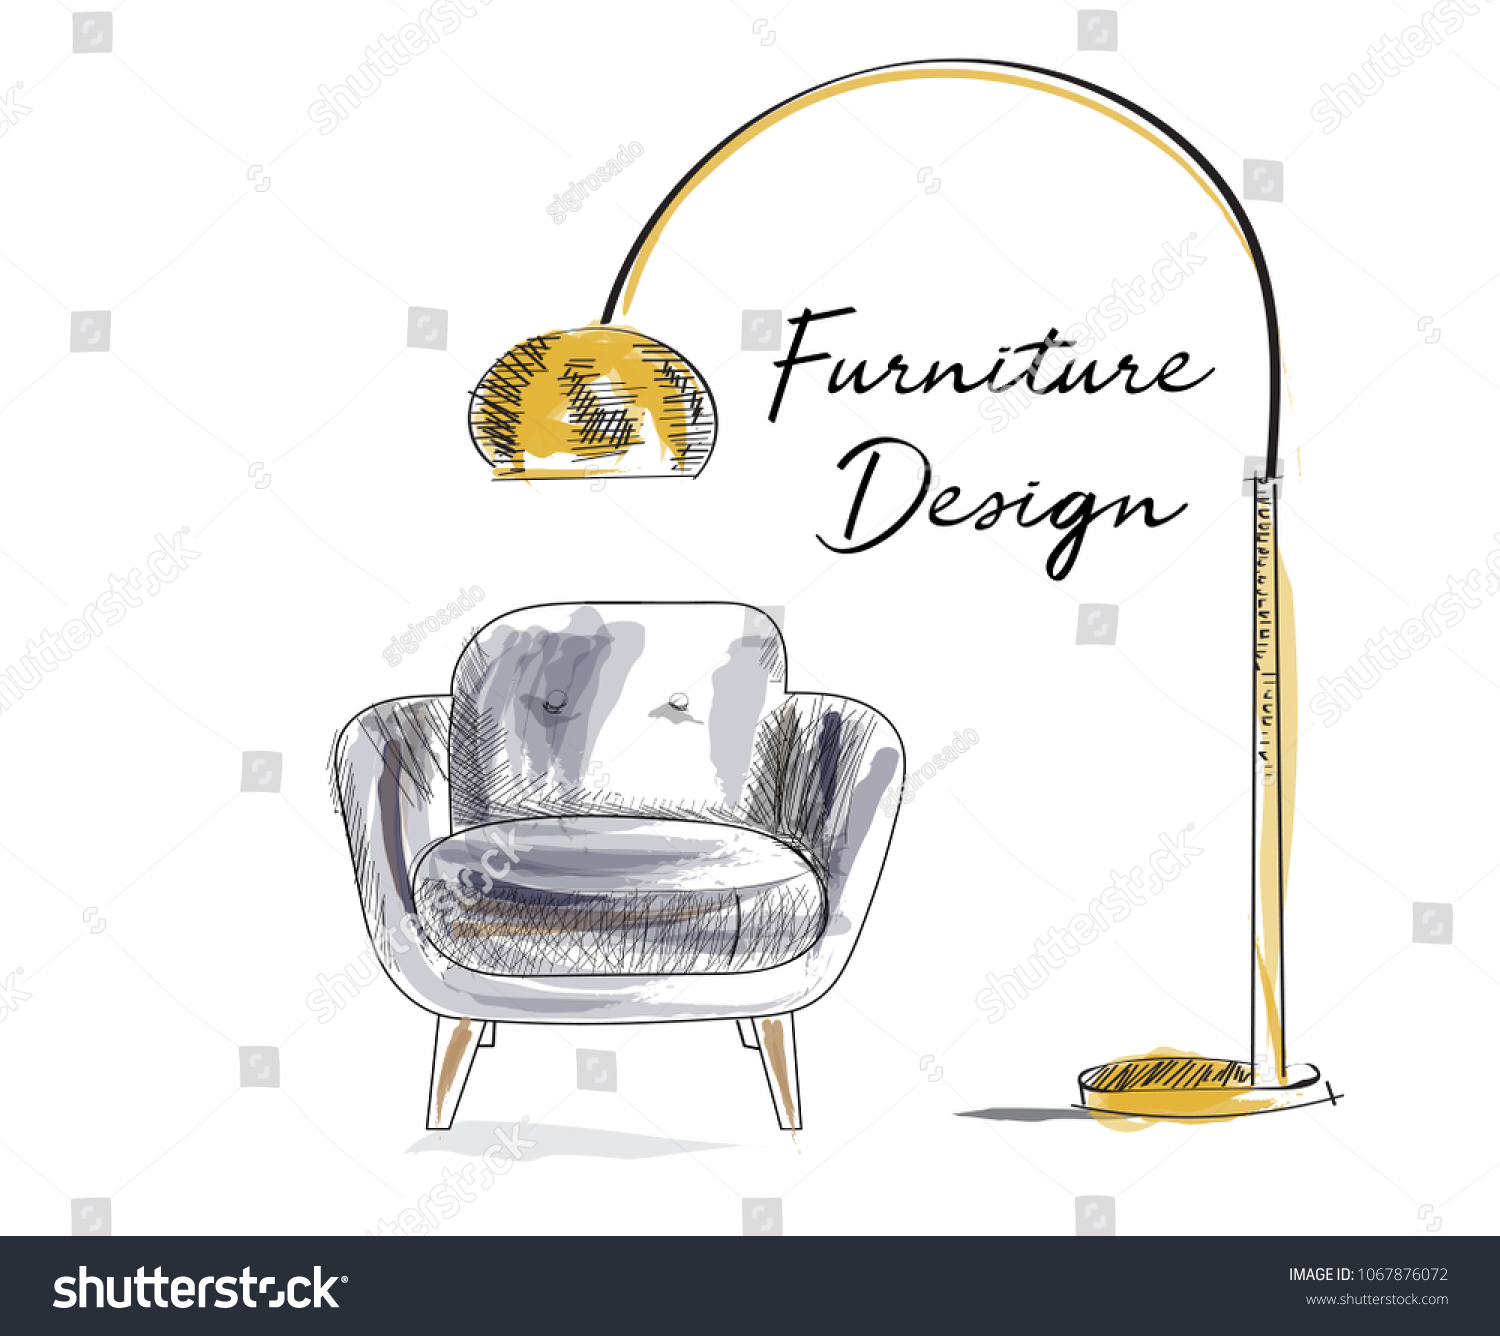 Armchair Sketch Hand Drawn Chair Vector Stock Vector Royalty Free 1067876072